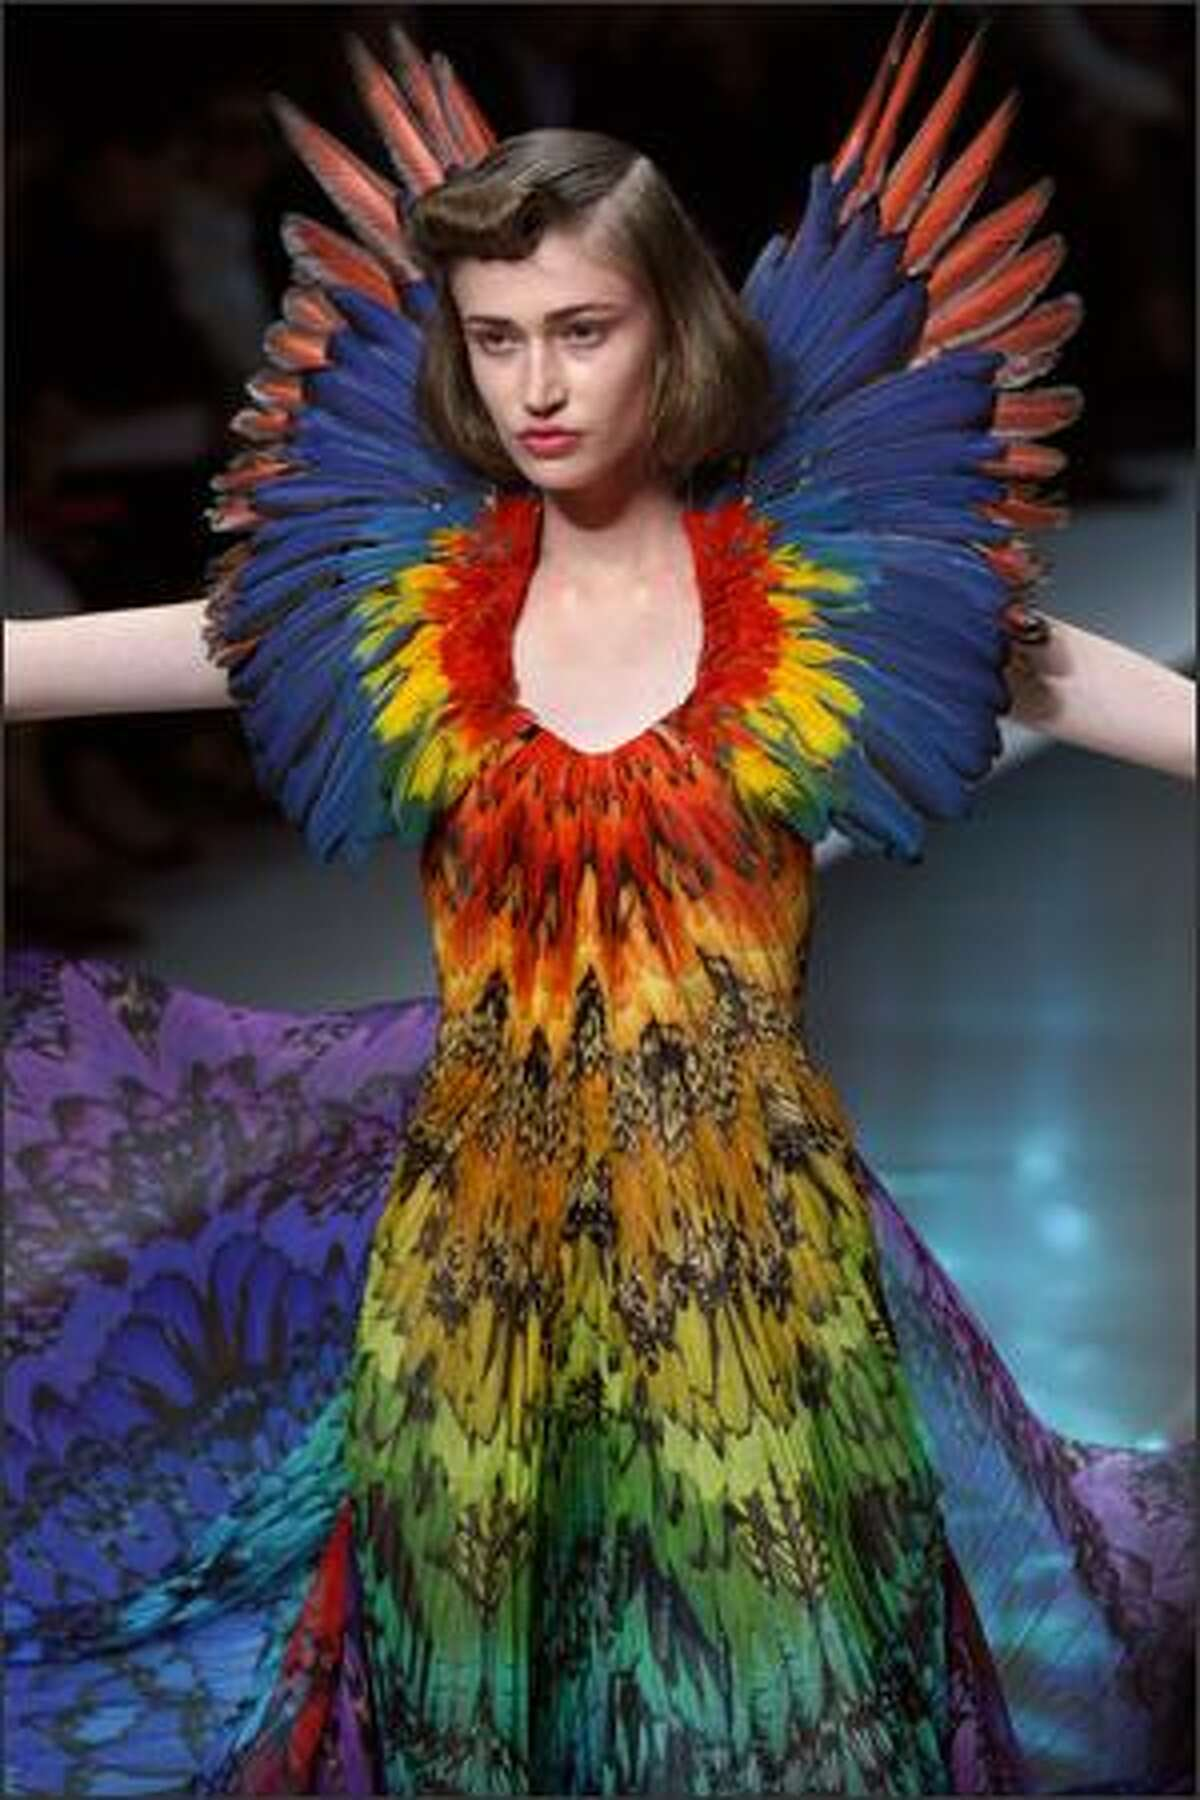 A model presents a creation by British designer Alexander Mcqueen during Spring/Summer 2008 ready-to-wear collection show in Paris, 05 October 2007.